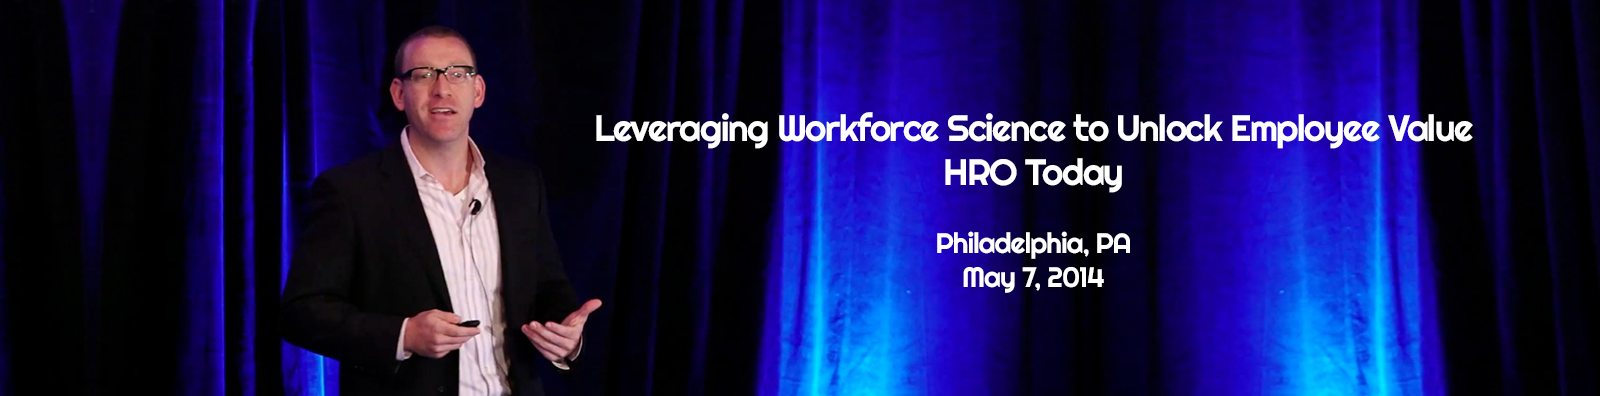 Dr. Michael Housman talks about workforce science at HRO Today